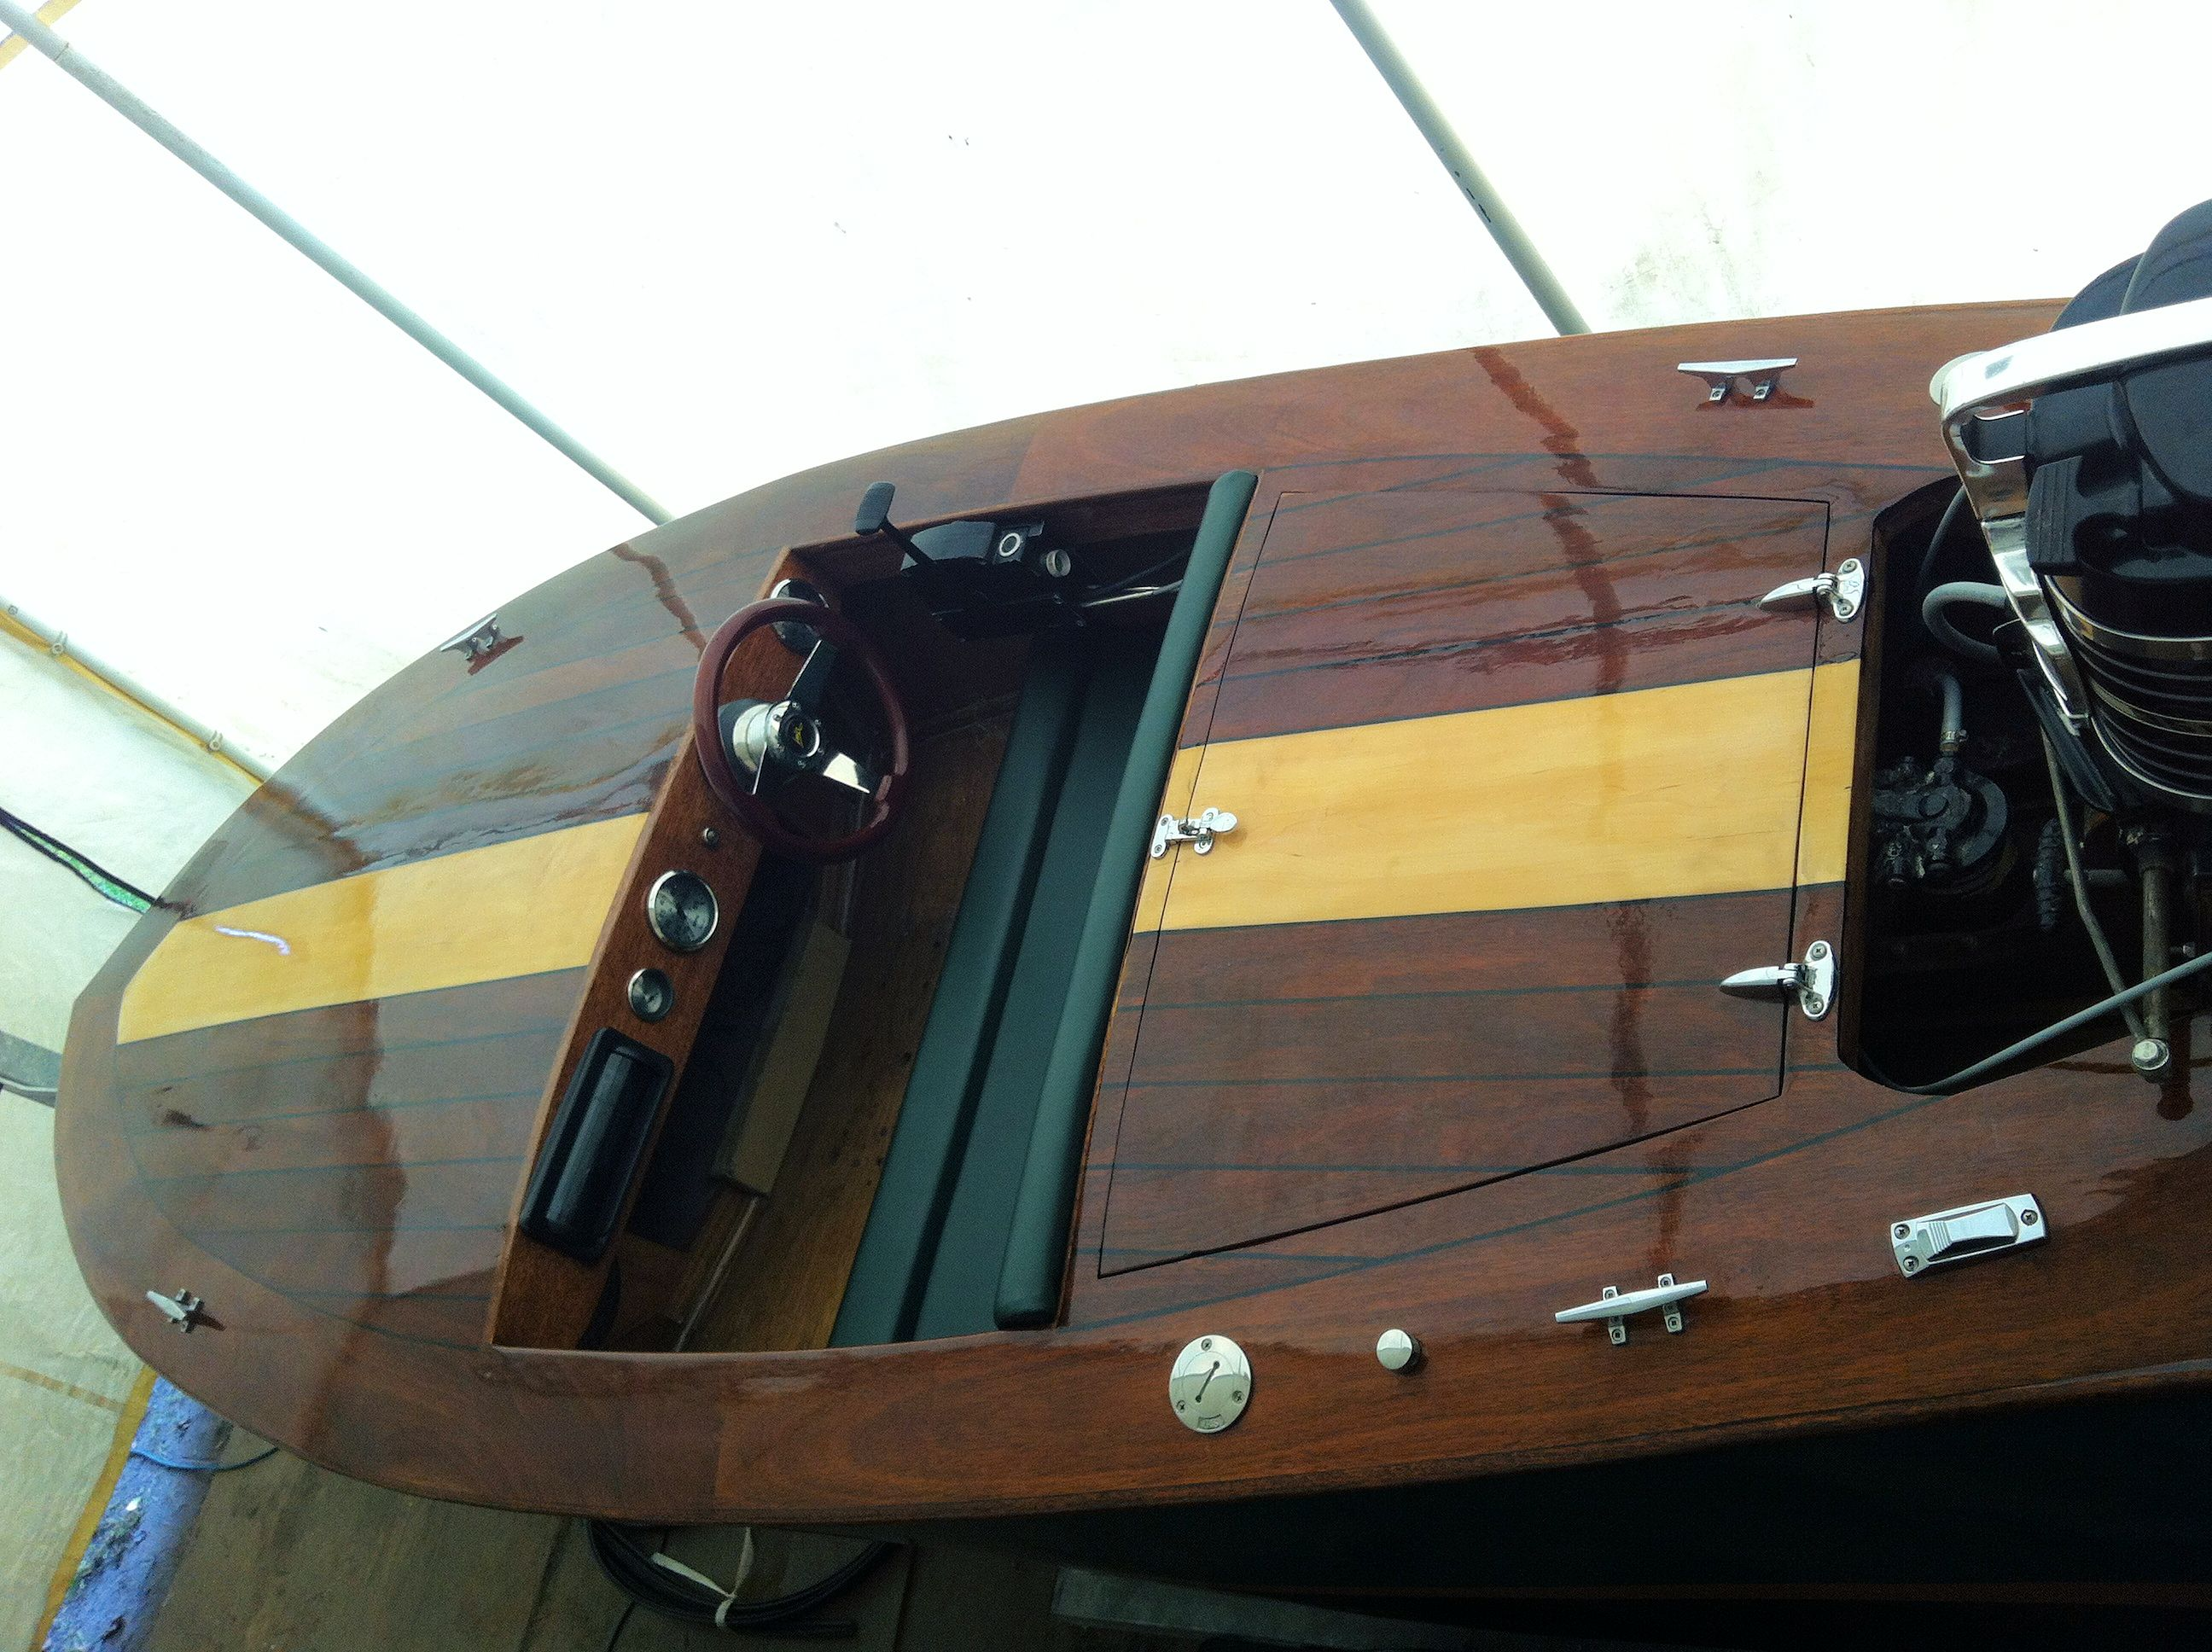 ... the Glen-L Squirt Changed My Life - Boatbuilders Site on Glen-L.com